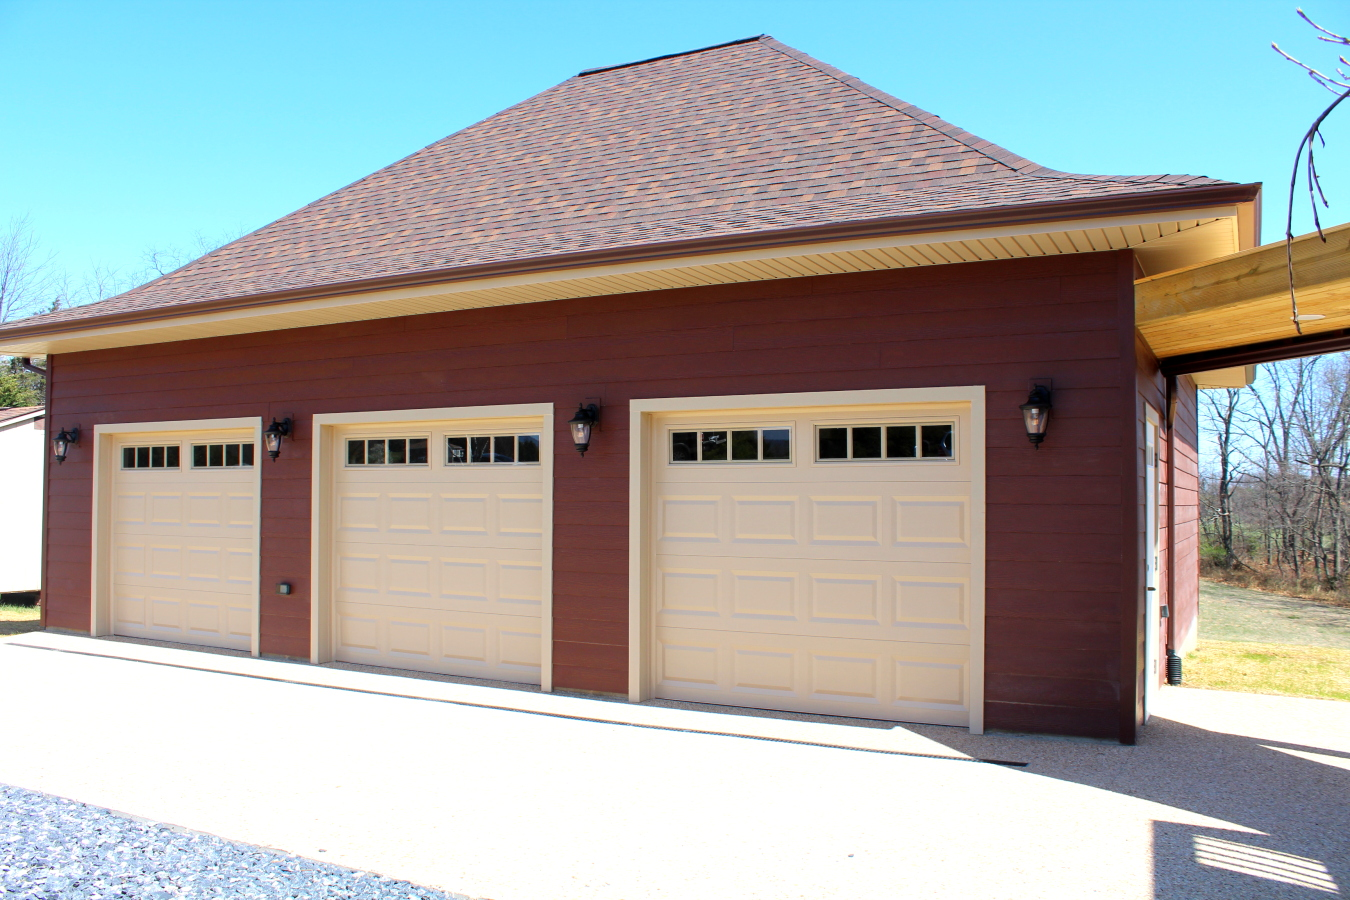 Some Neat Features Of This Project Include An Upper E In The Garage Photos Below And Covered Walkway From To Patio Area Under